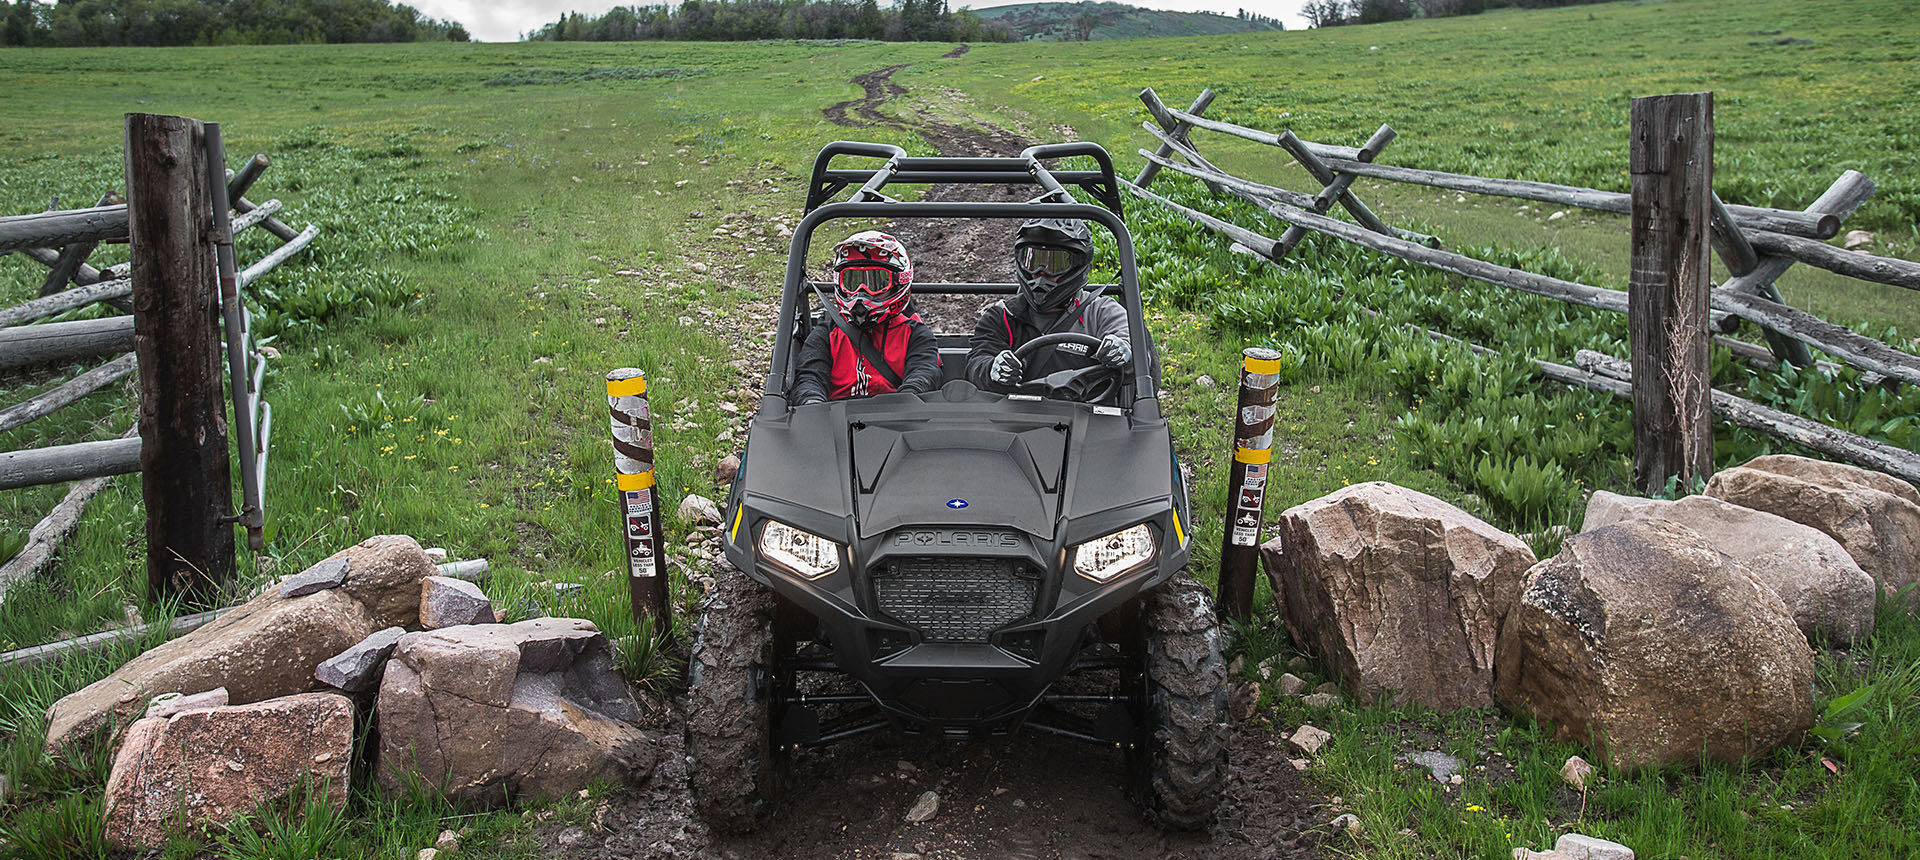 2020 RZR<sup>®</sup> Trail 570 Instagram image 3